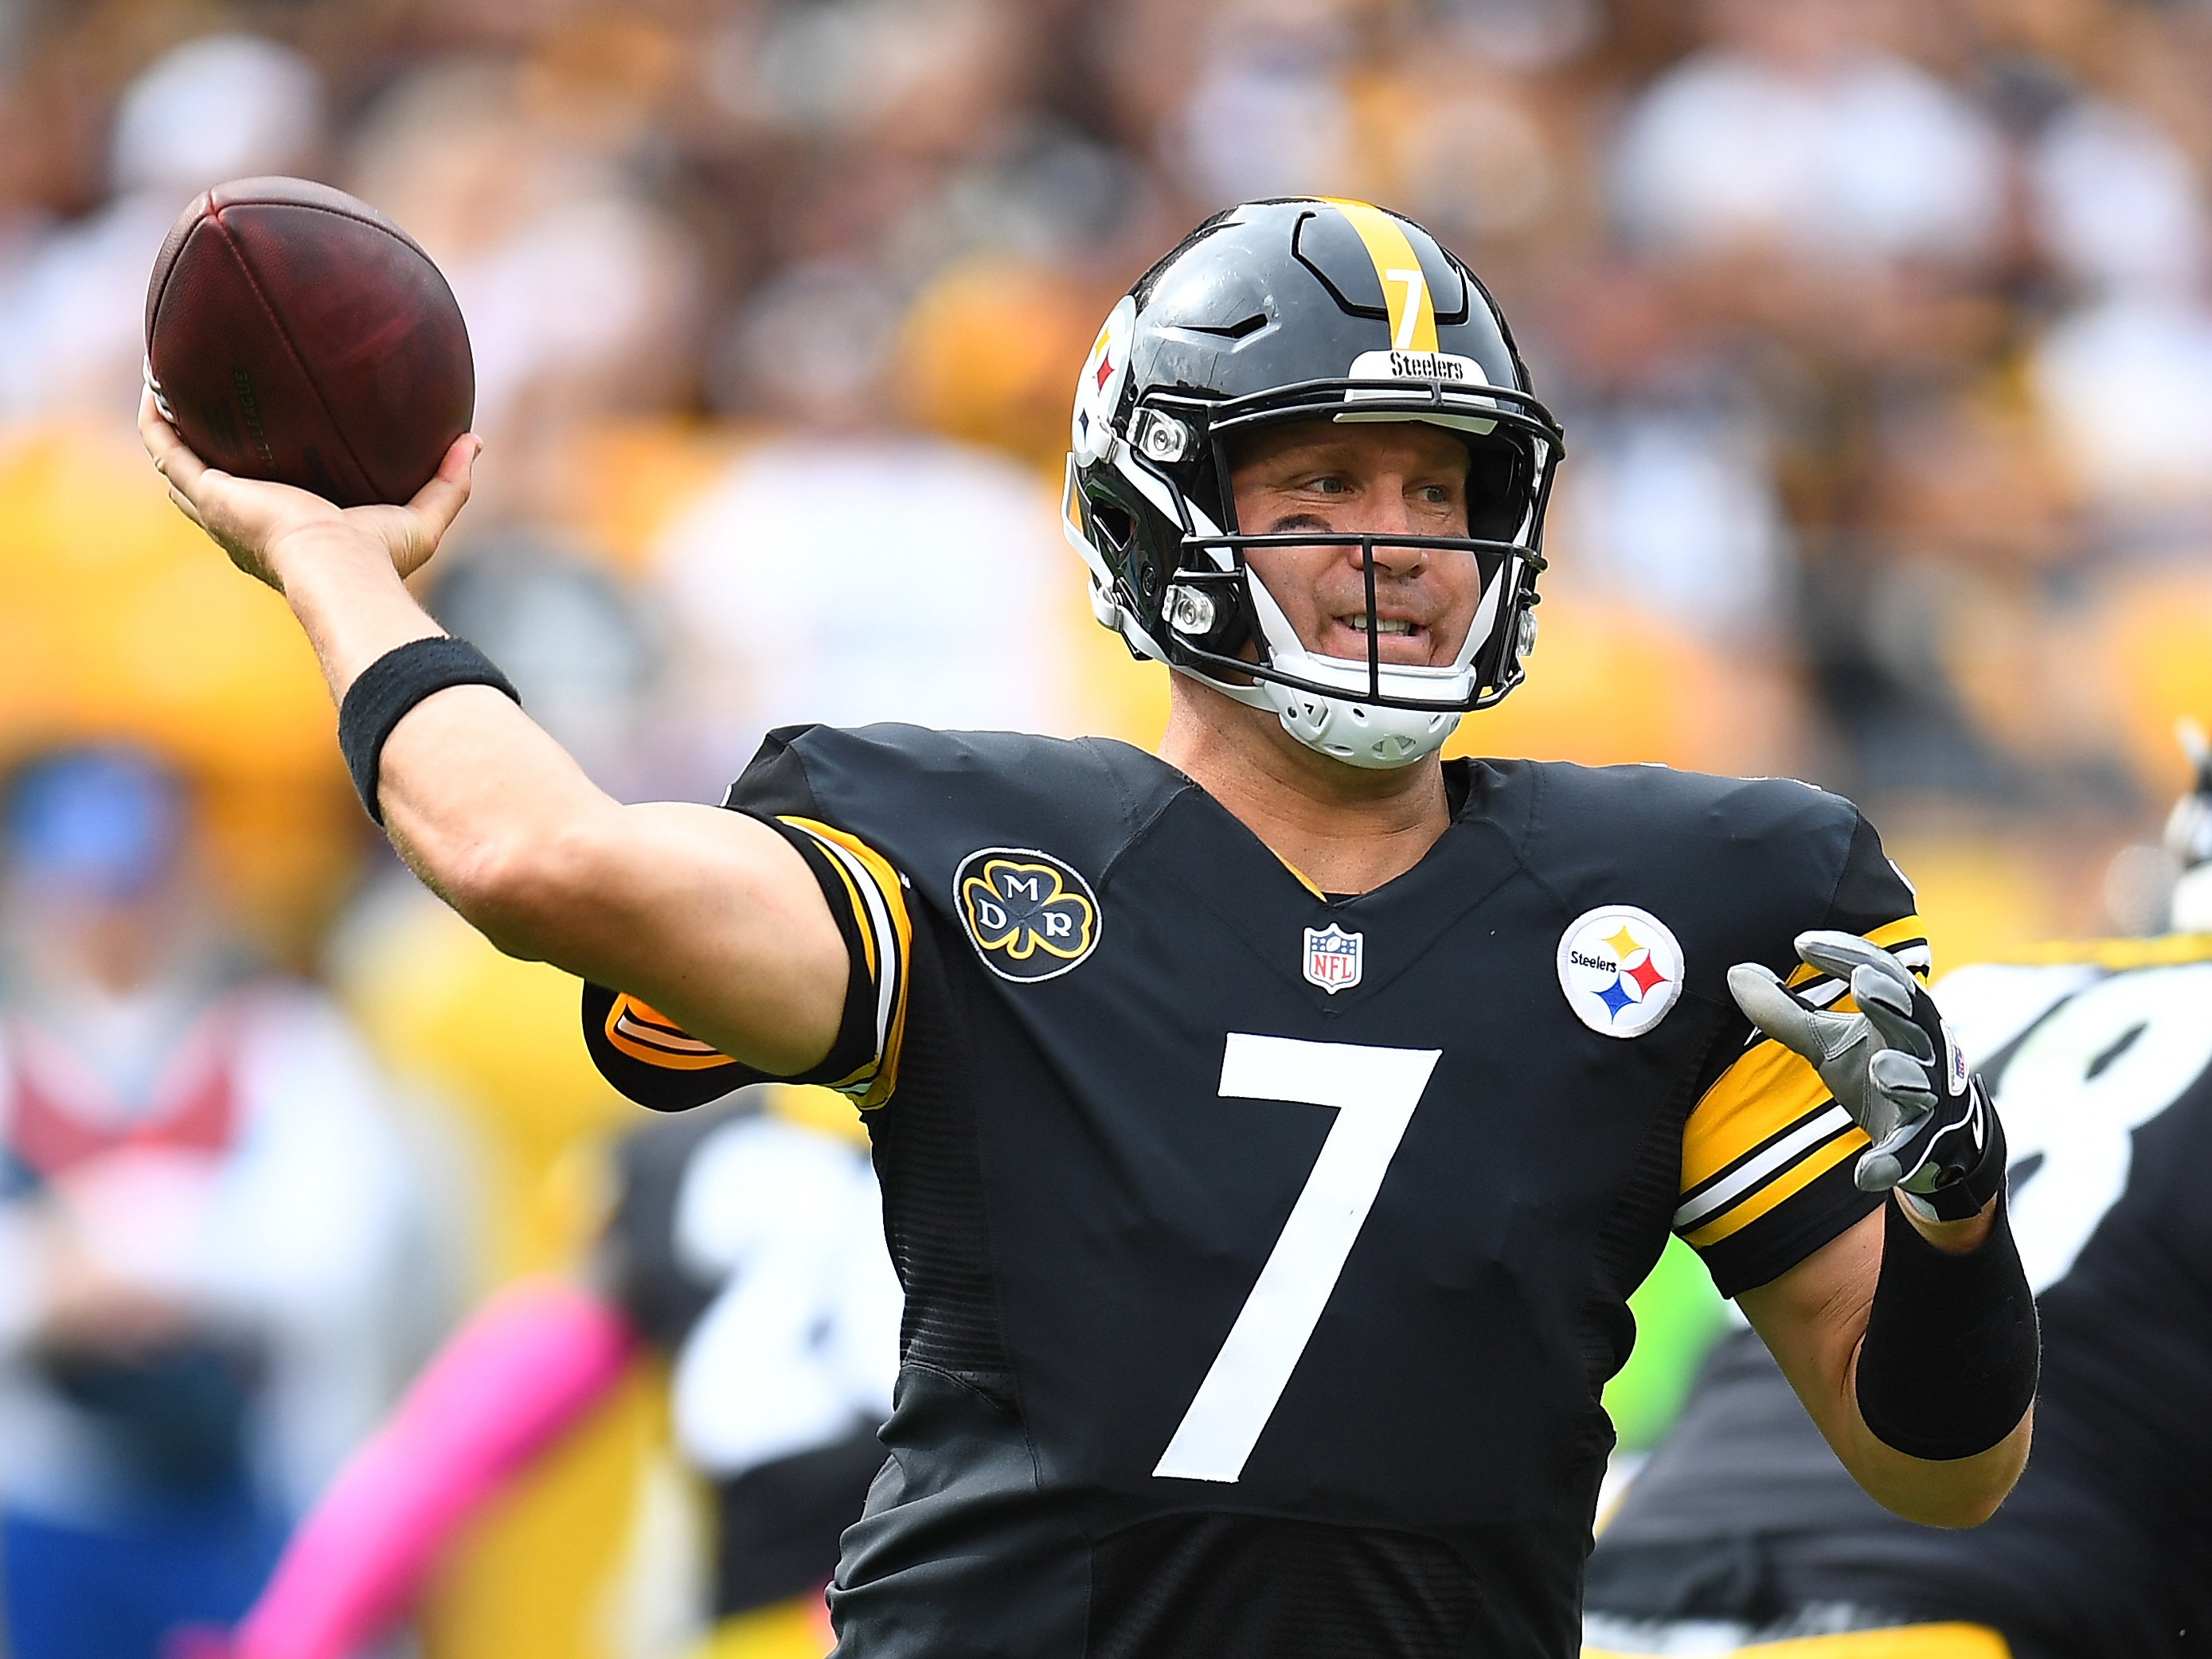 Get the latest updated stats for Pittsburgh Steelers quarterback Ben Roethlisberger on ESPNcom